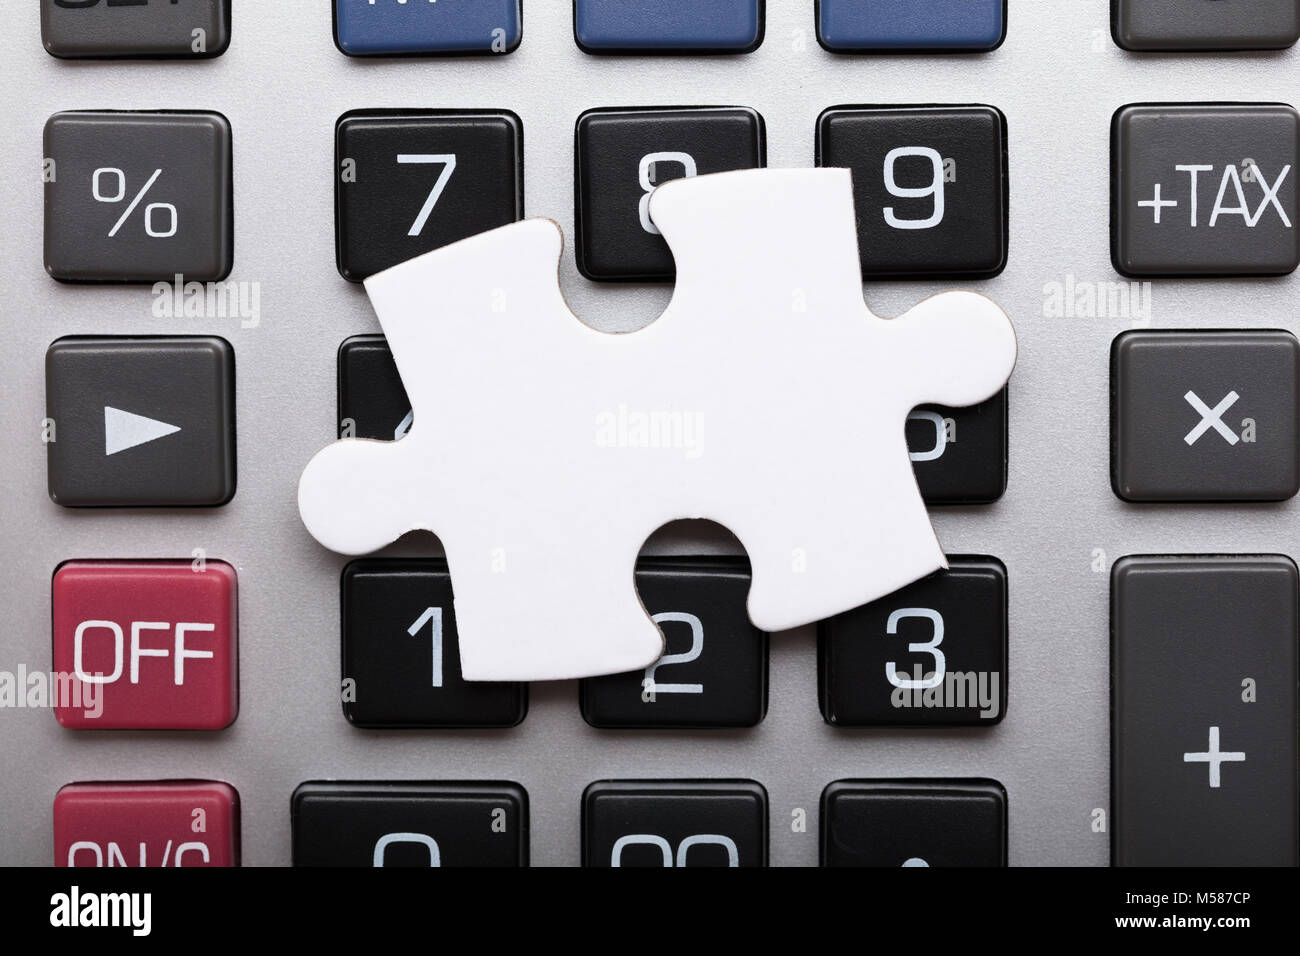 Puzzle Piece Number Stock Photos & Puzzle Piece Number Stock Images ...